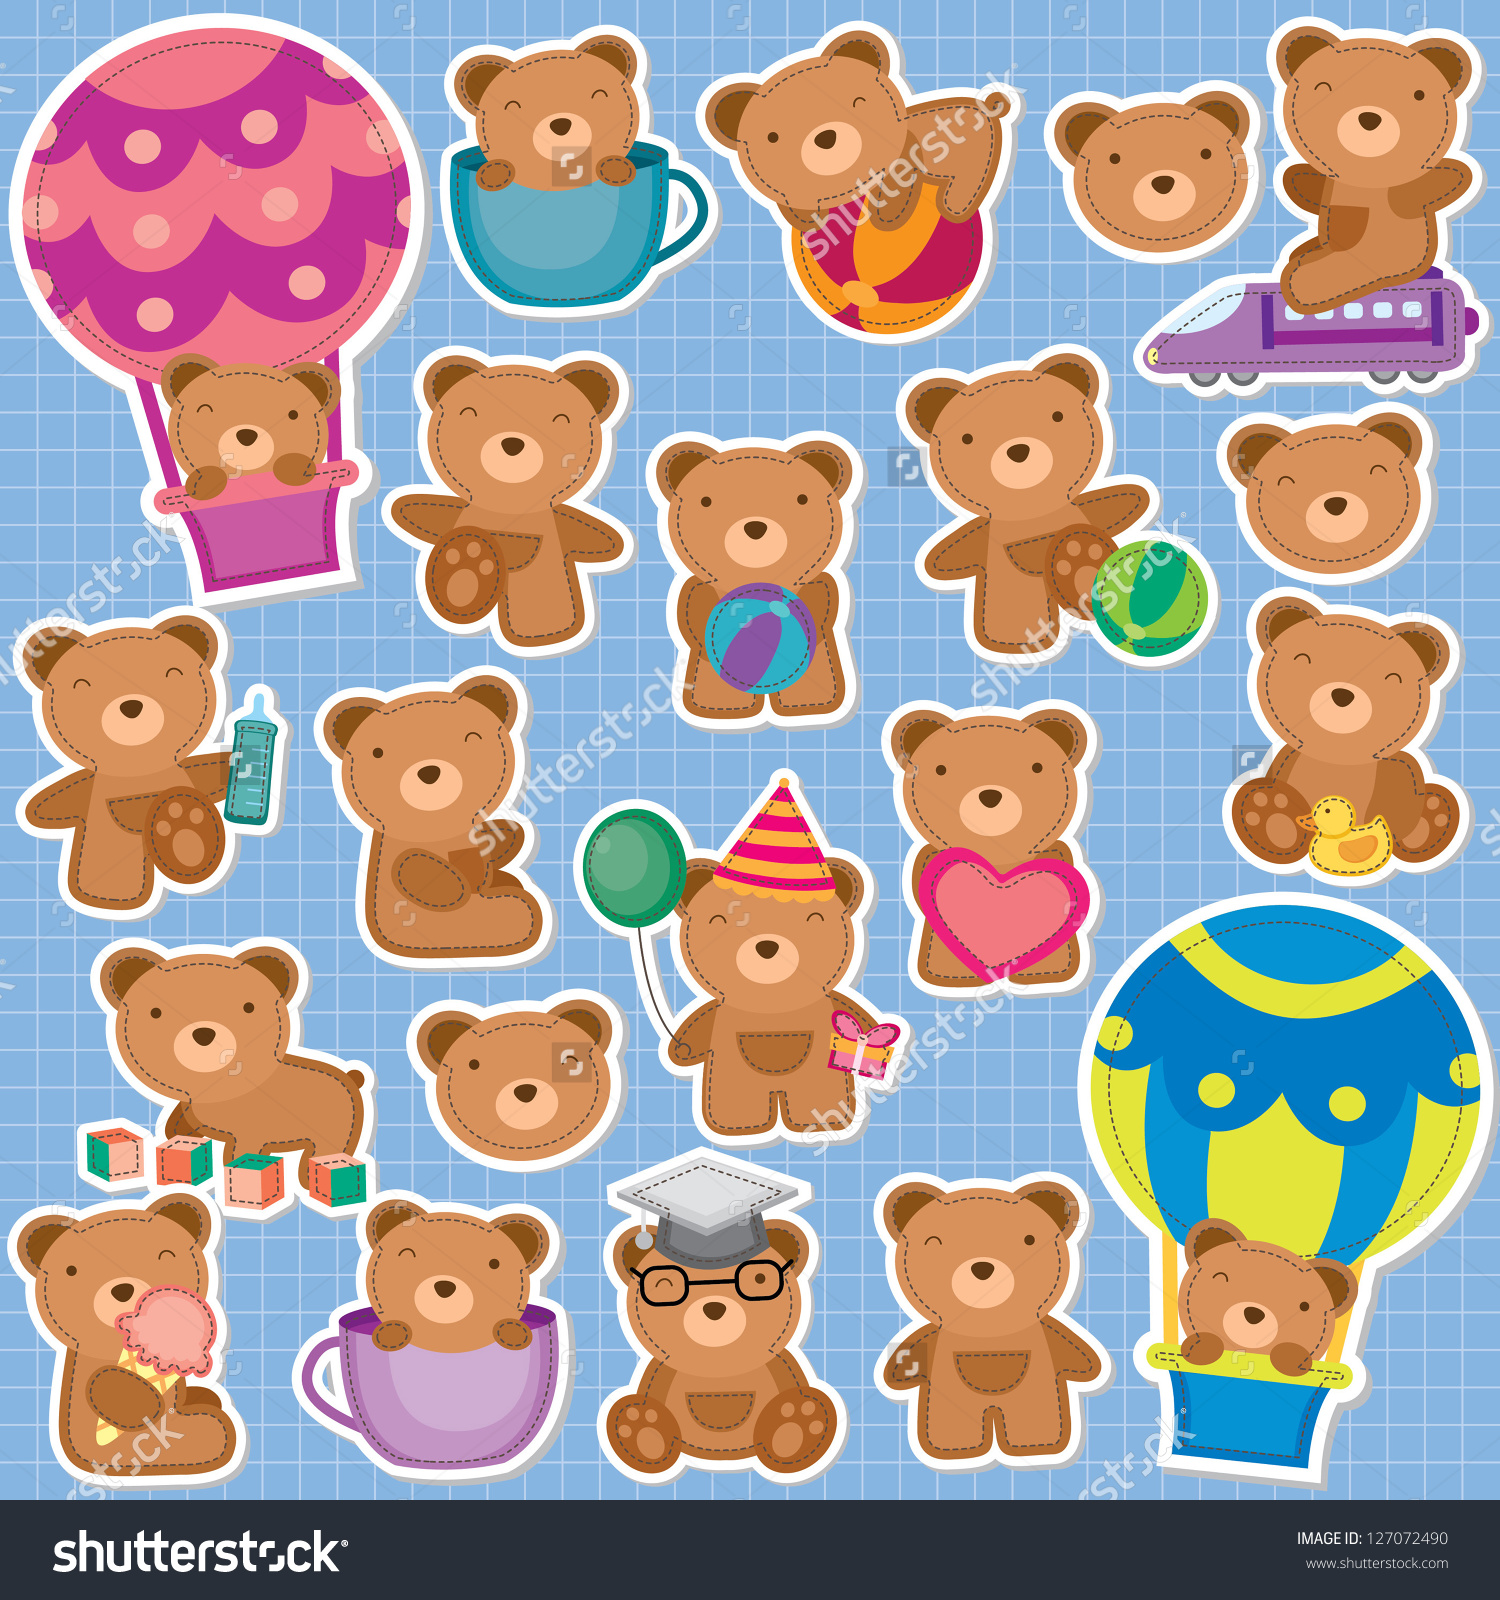 Teddy clipart cute bear Bear Stuffed cute Stuffed Teddy